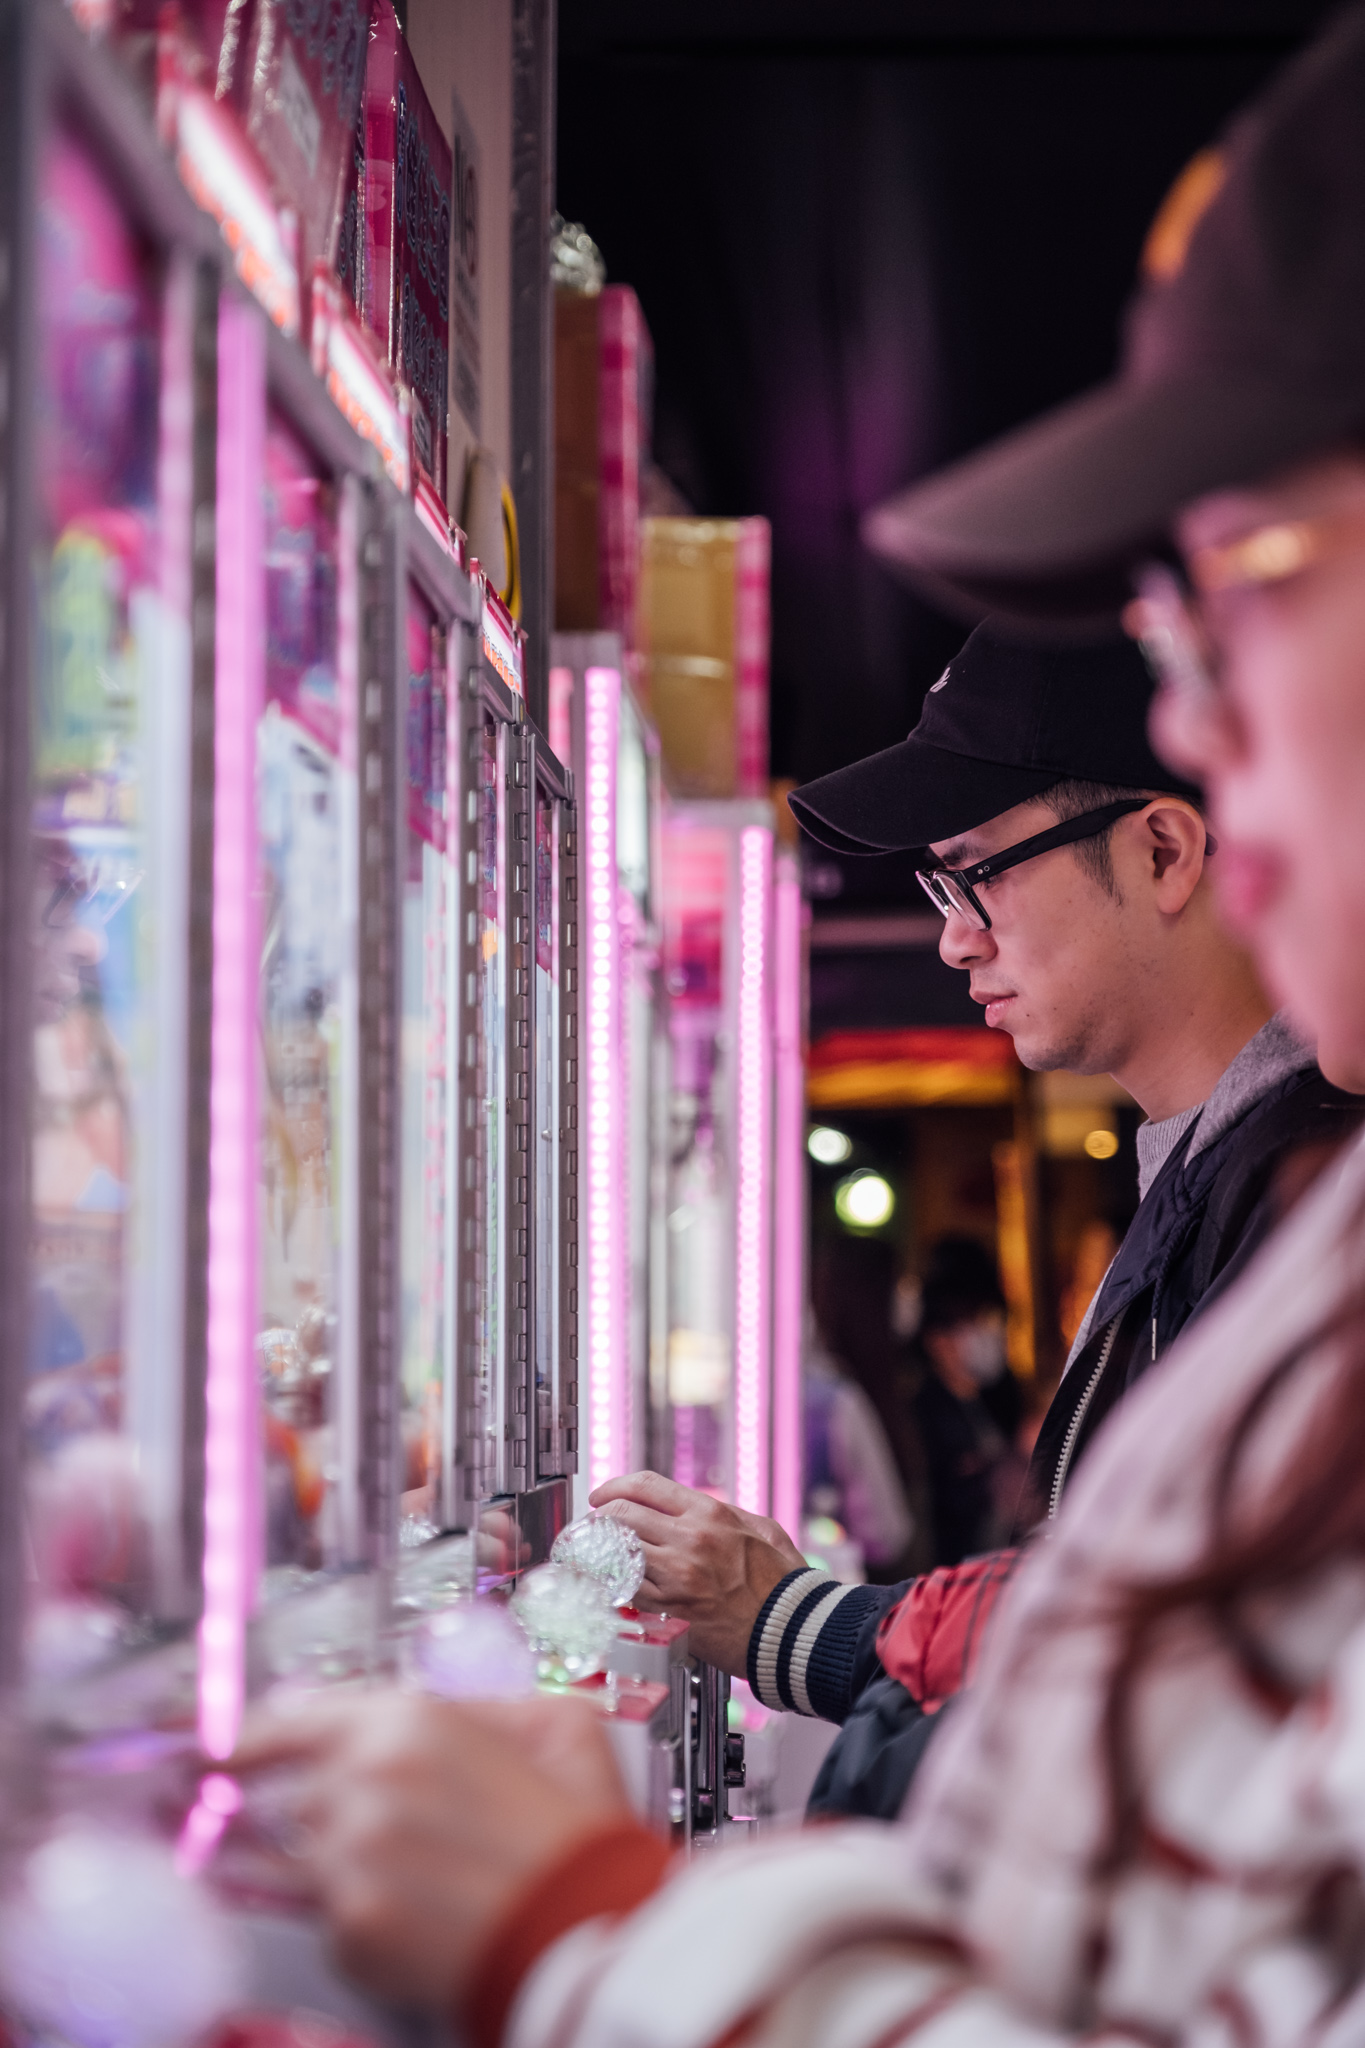 - It seems impossible to win in these crane games, but after you spend a certain amount, you can choose your own prize.